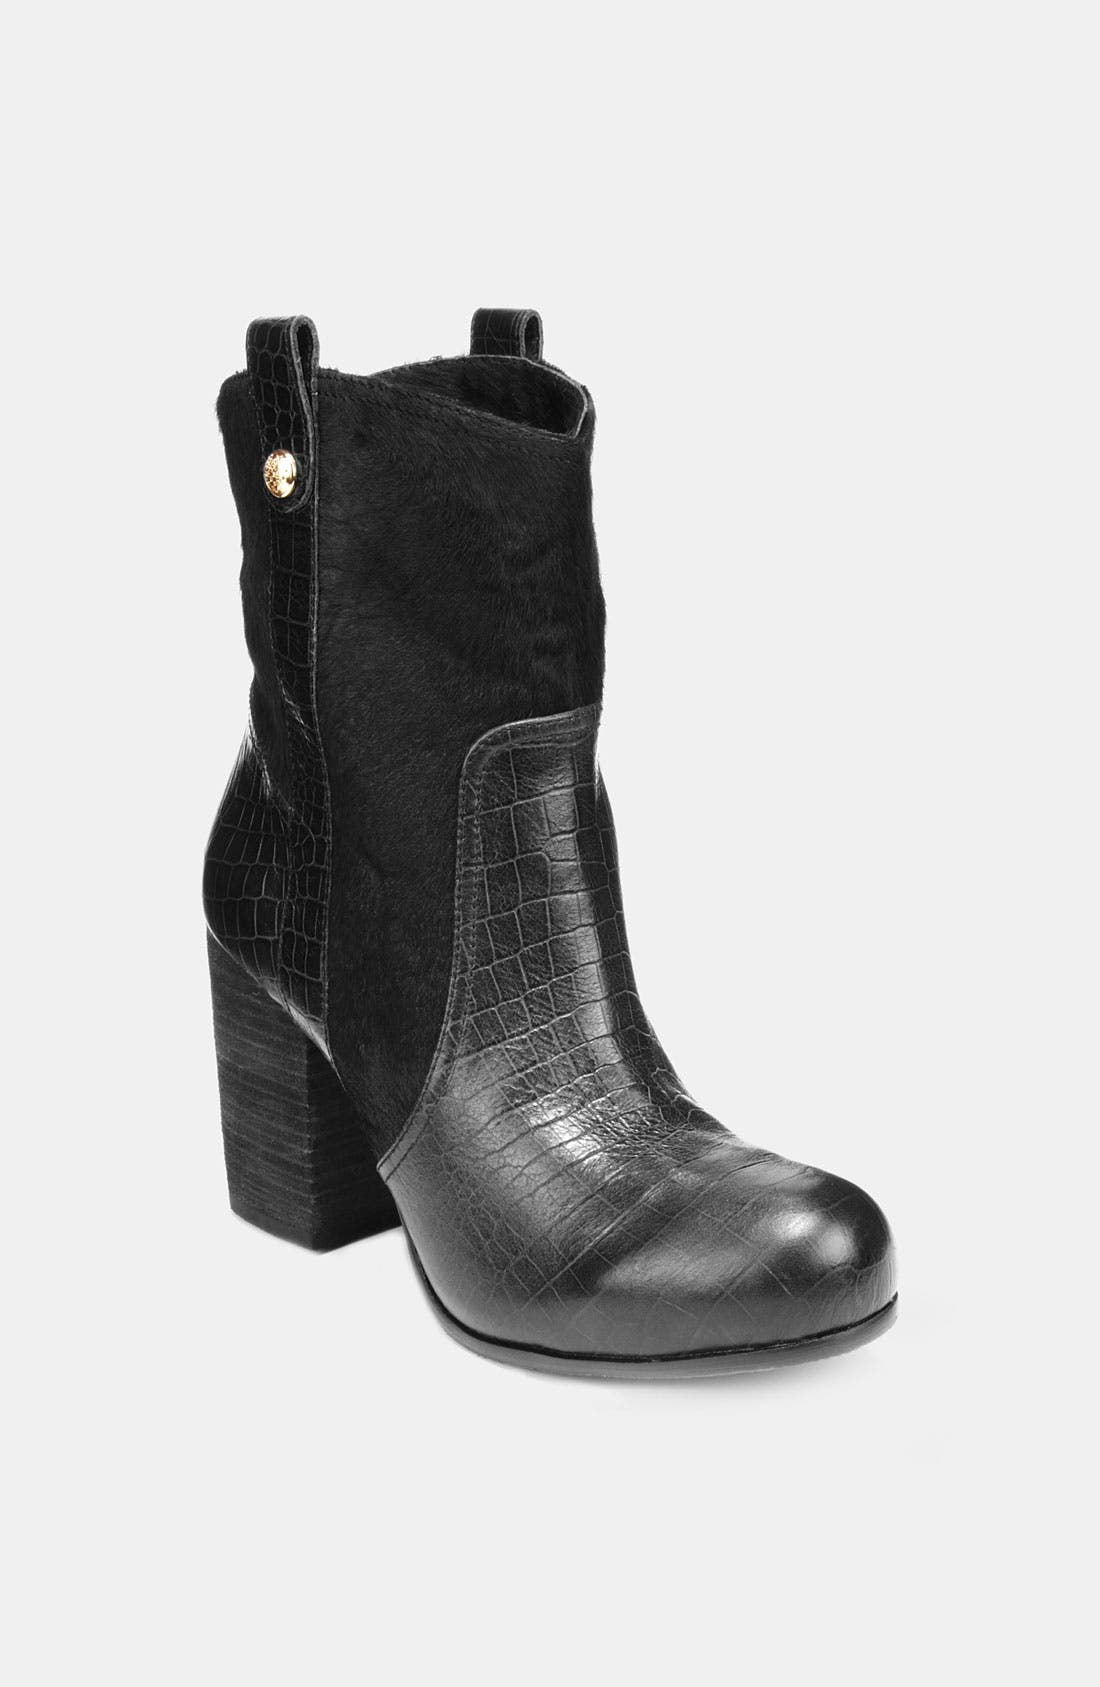 Alternate Image 1 Selected - Vince Camuto 'Bennie' Boot